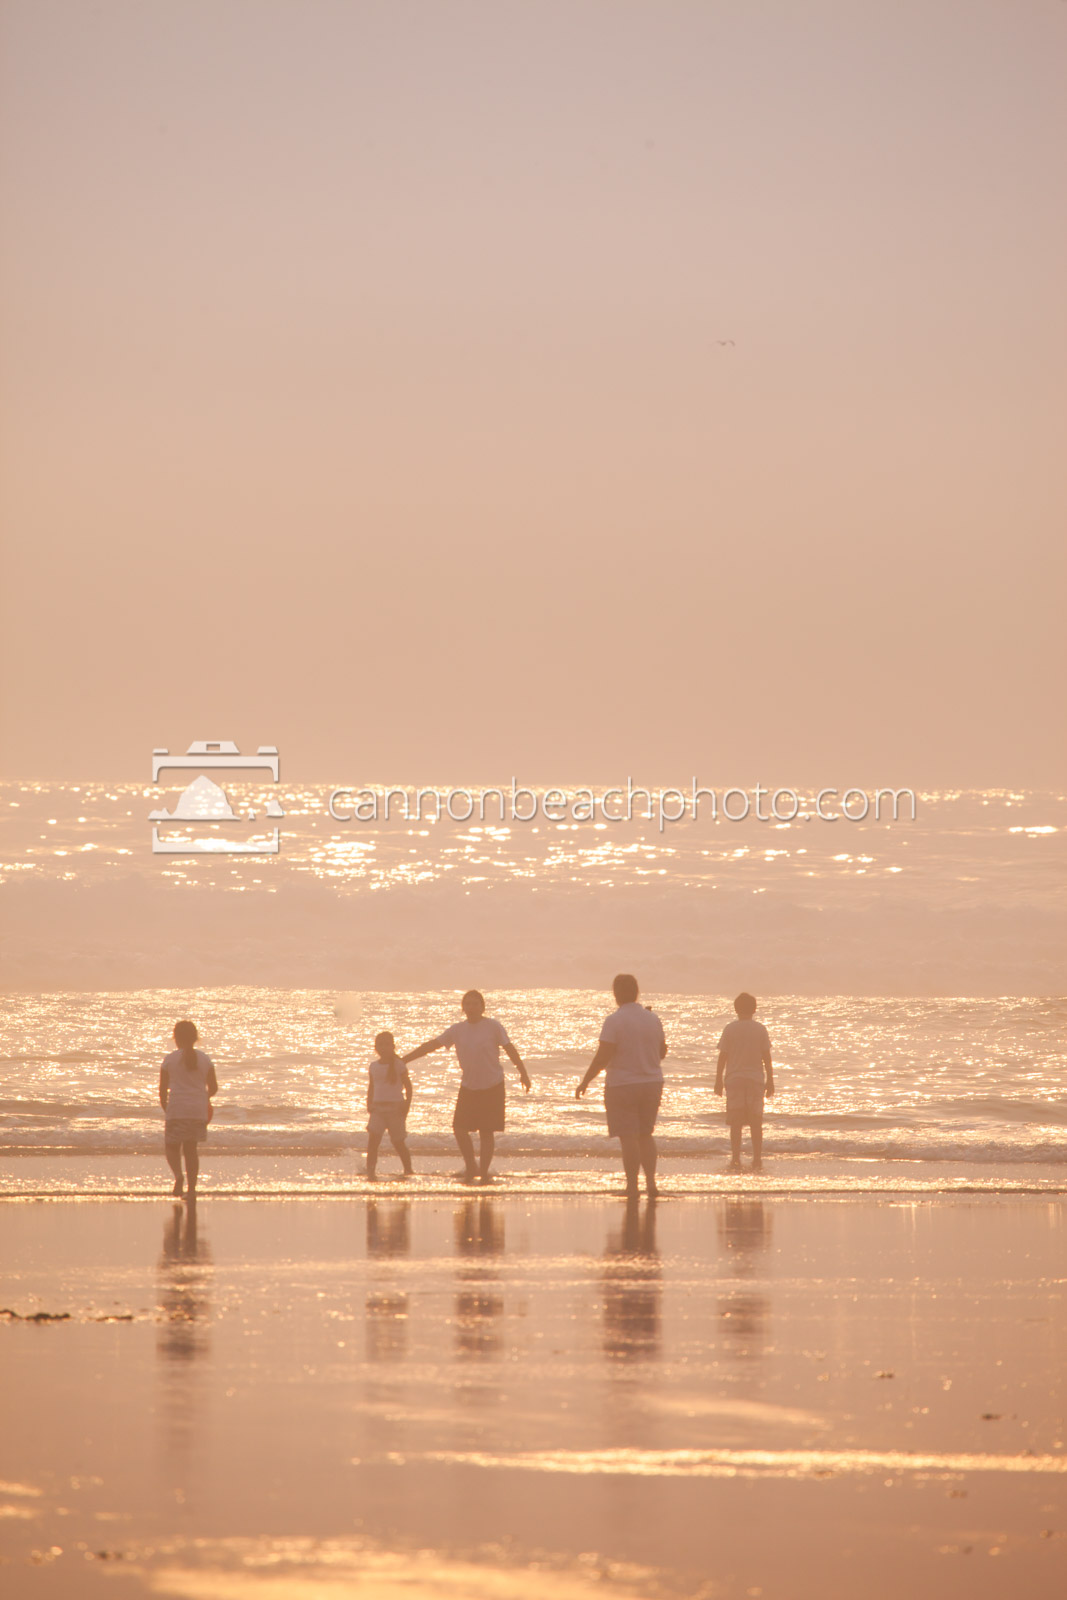 Family Playing at the Ocean on a Dreamy Day